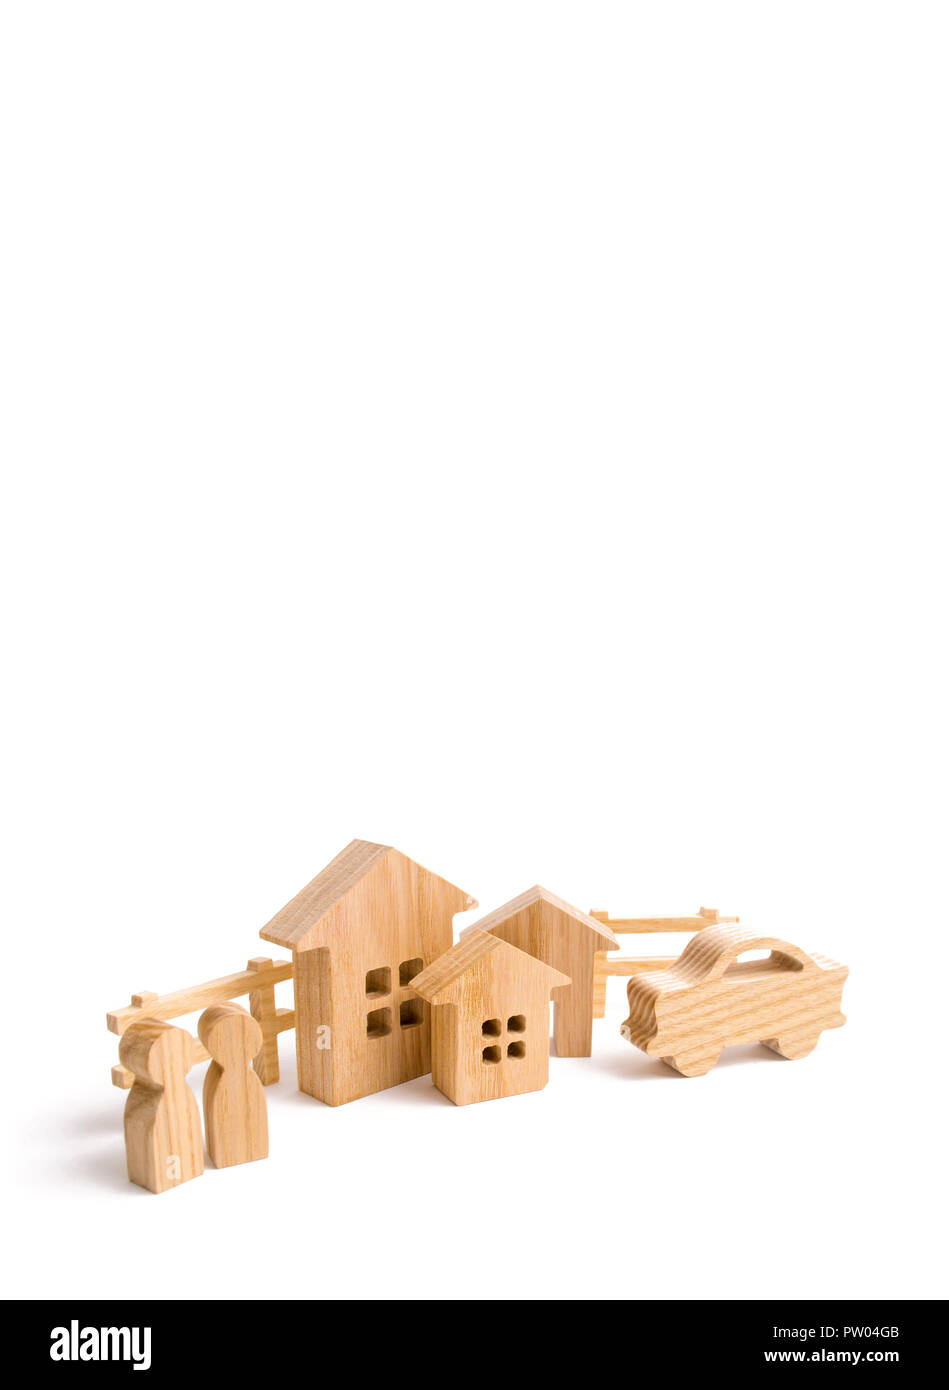 Wooden houses, people and car on a white background. The concept of possessions, buildings. Purchase and sale of real estate, investment. . Constructi - Stock Image